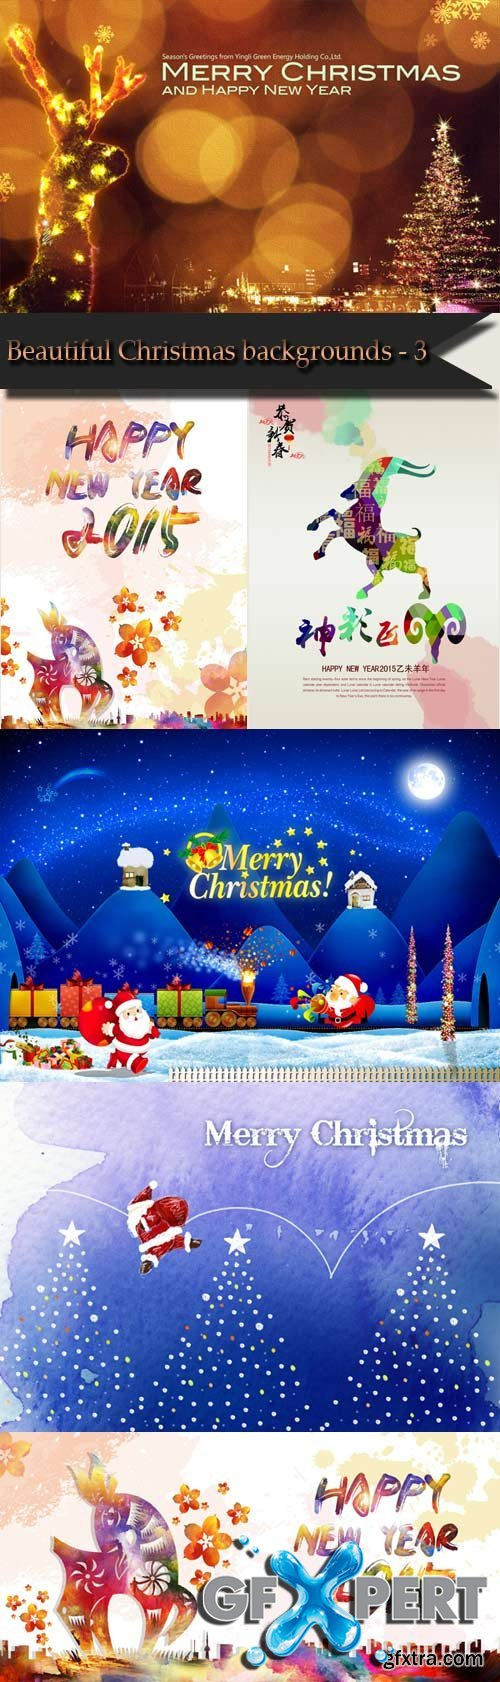 Beautiful Christmas backgrounds - 3